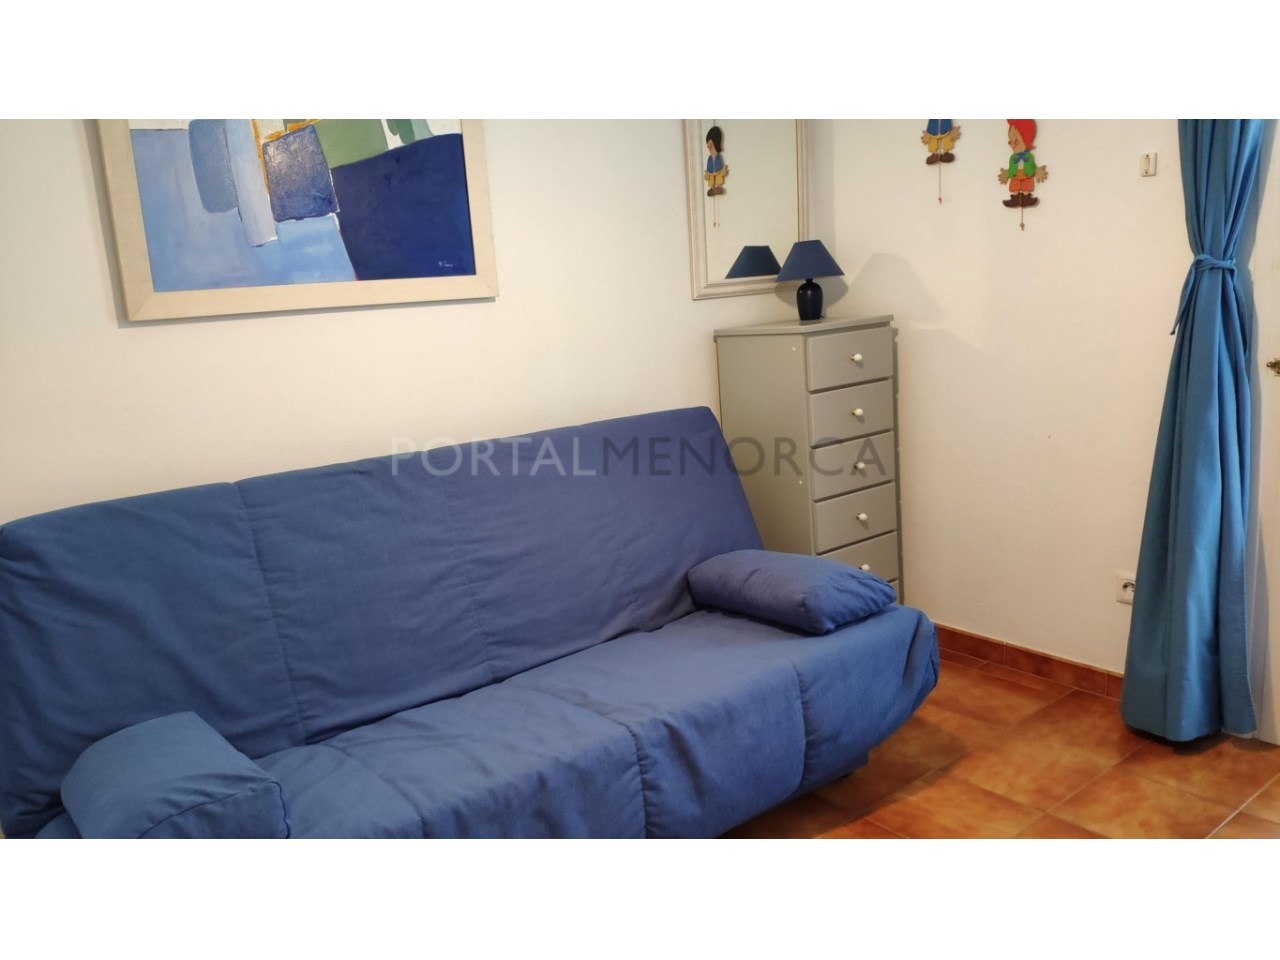 Townhouse for sale in Calan Blanes near the beach- Living room